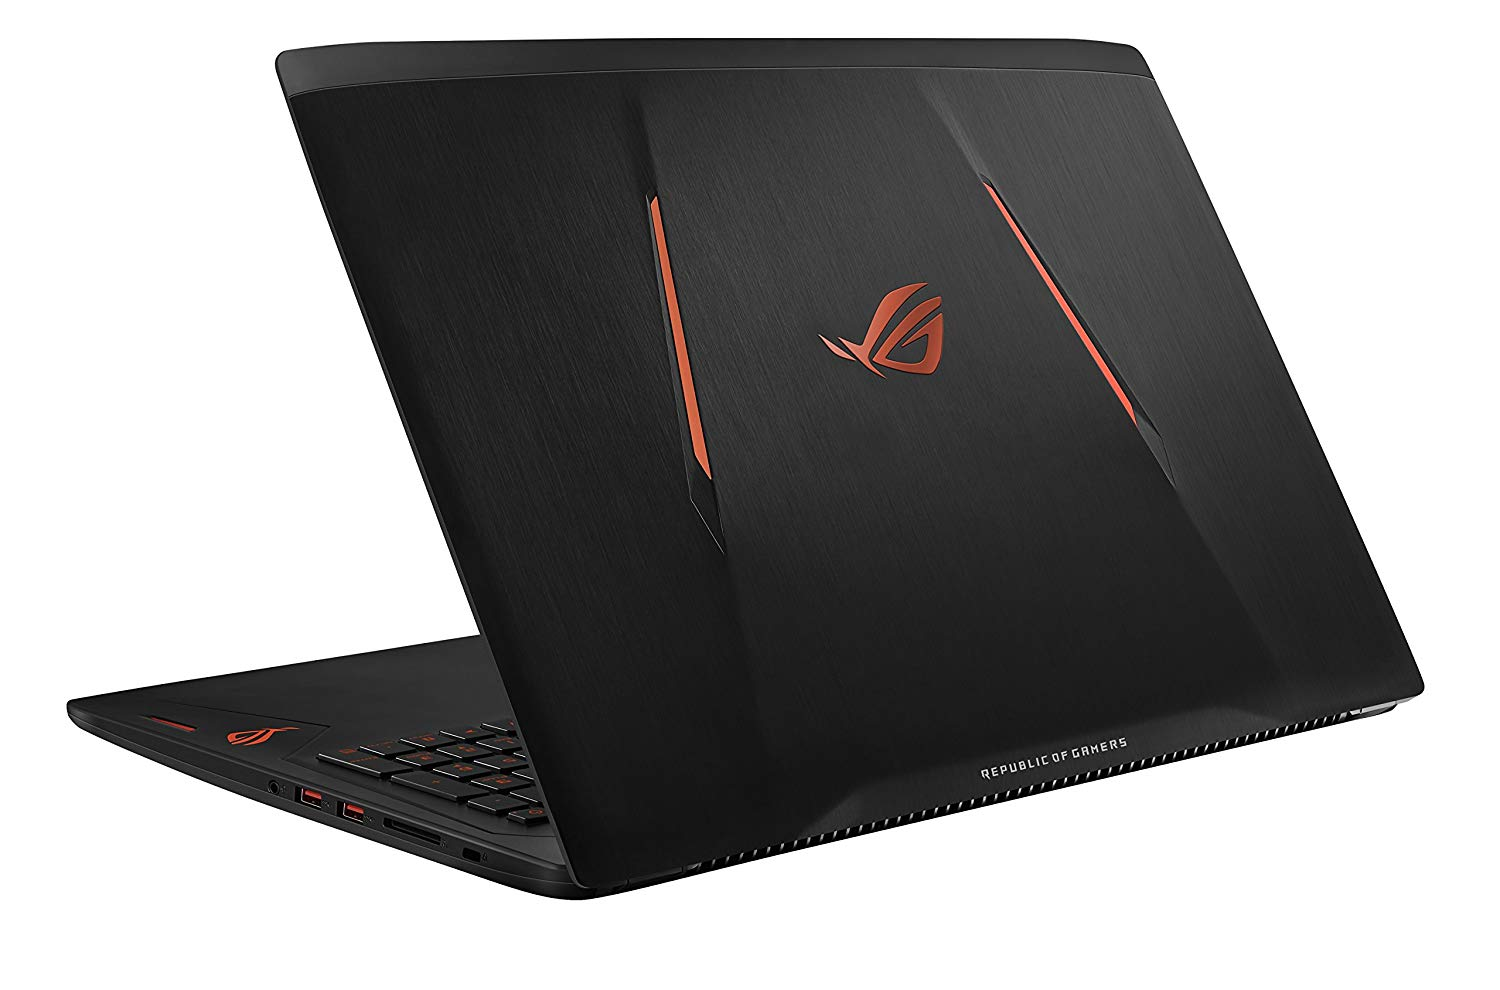 Asus ROG - Computer Science Laptops